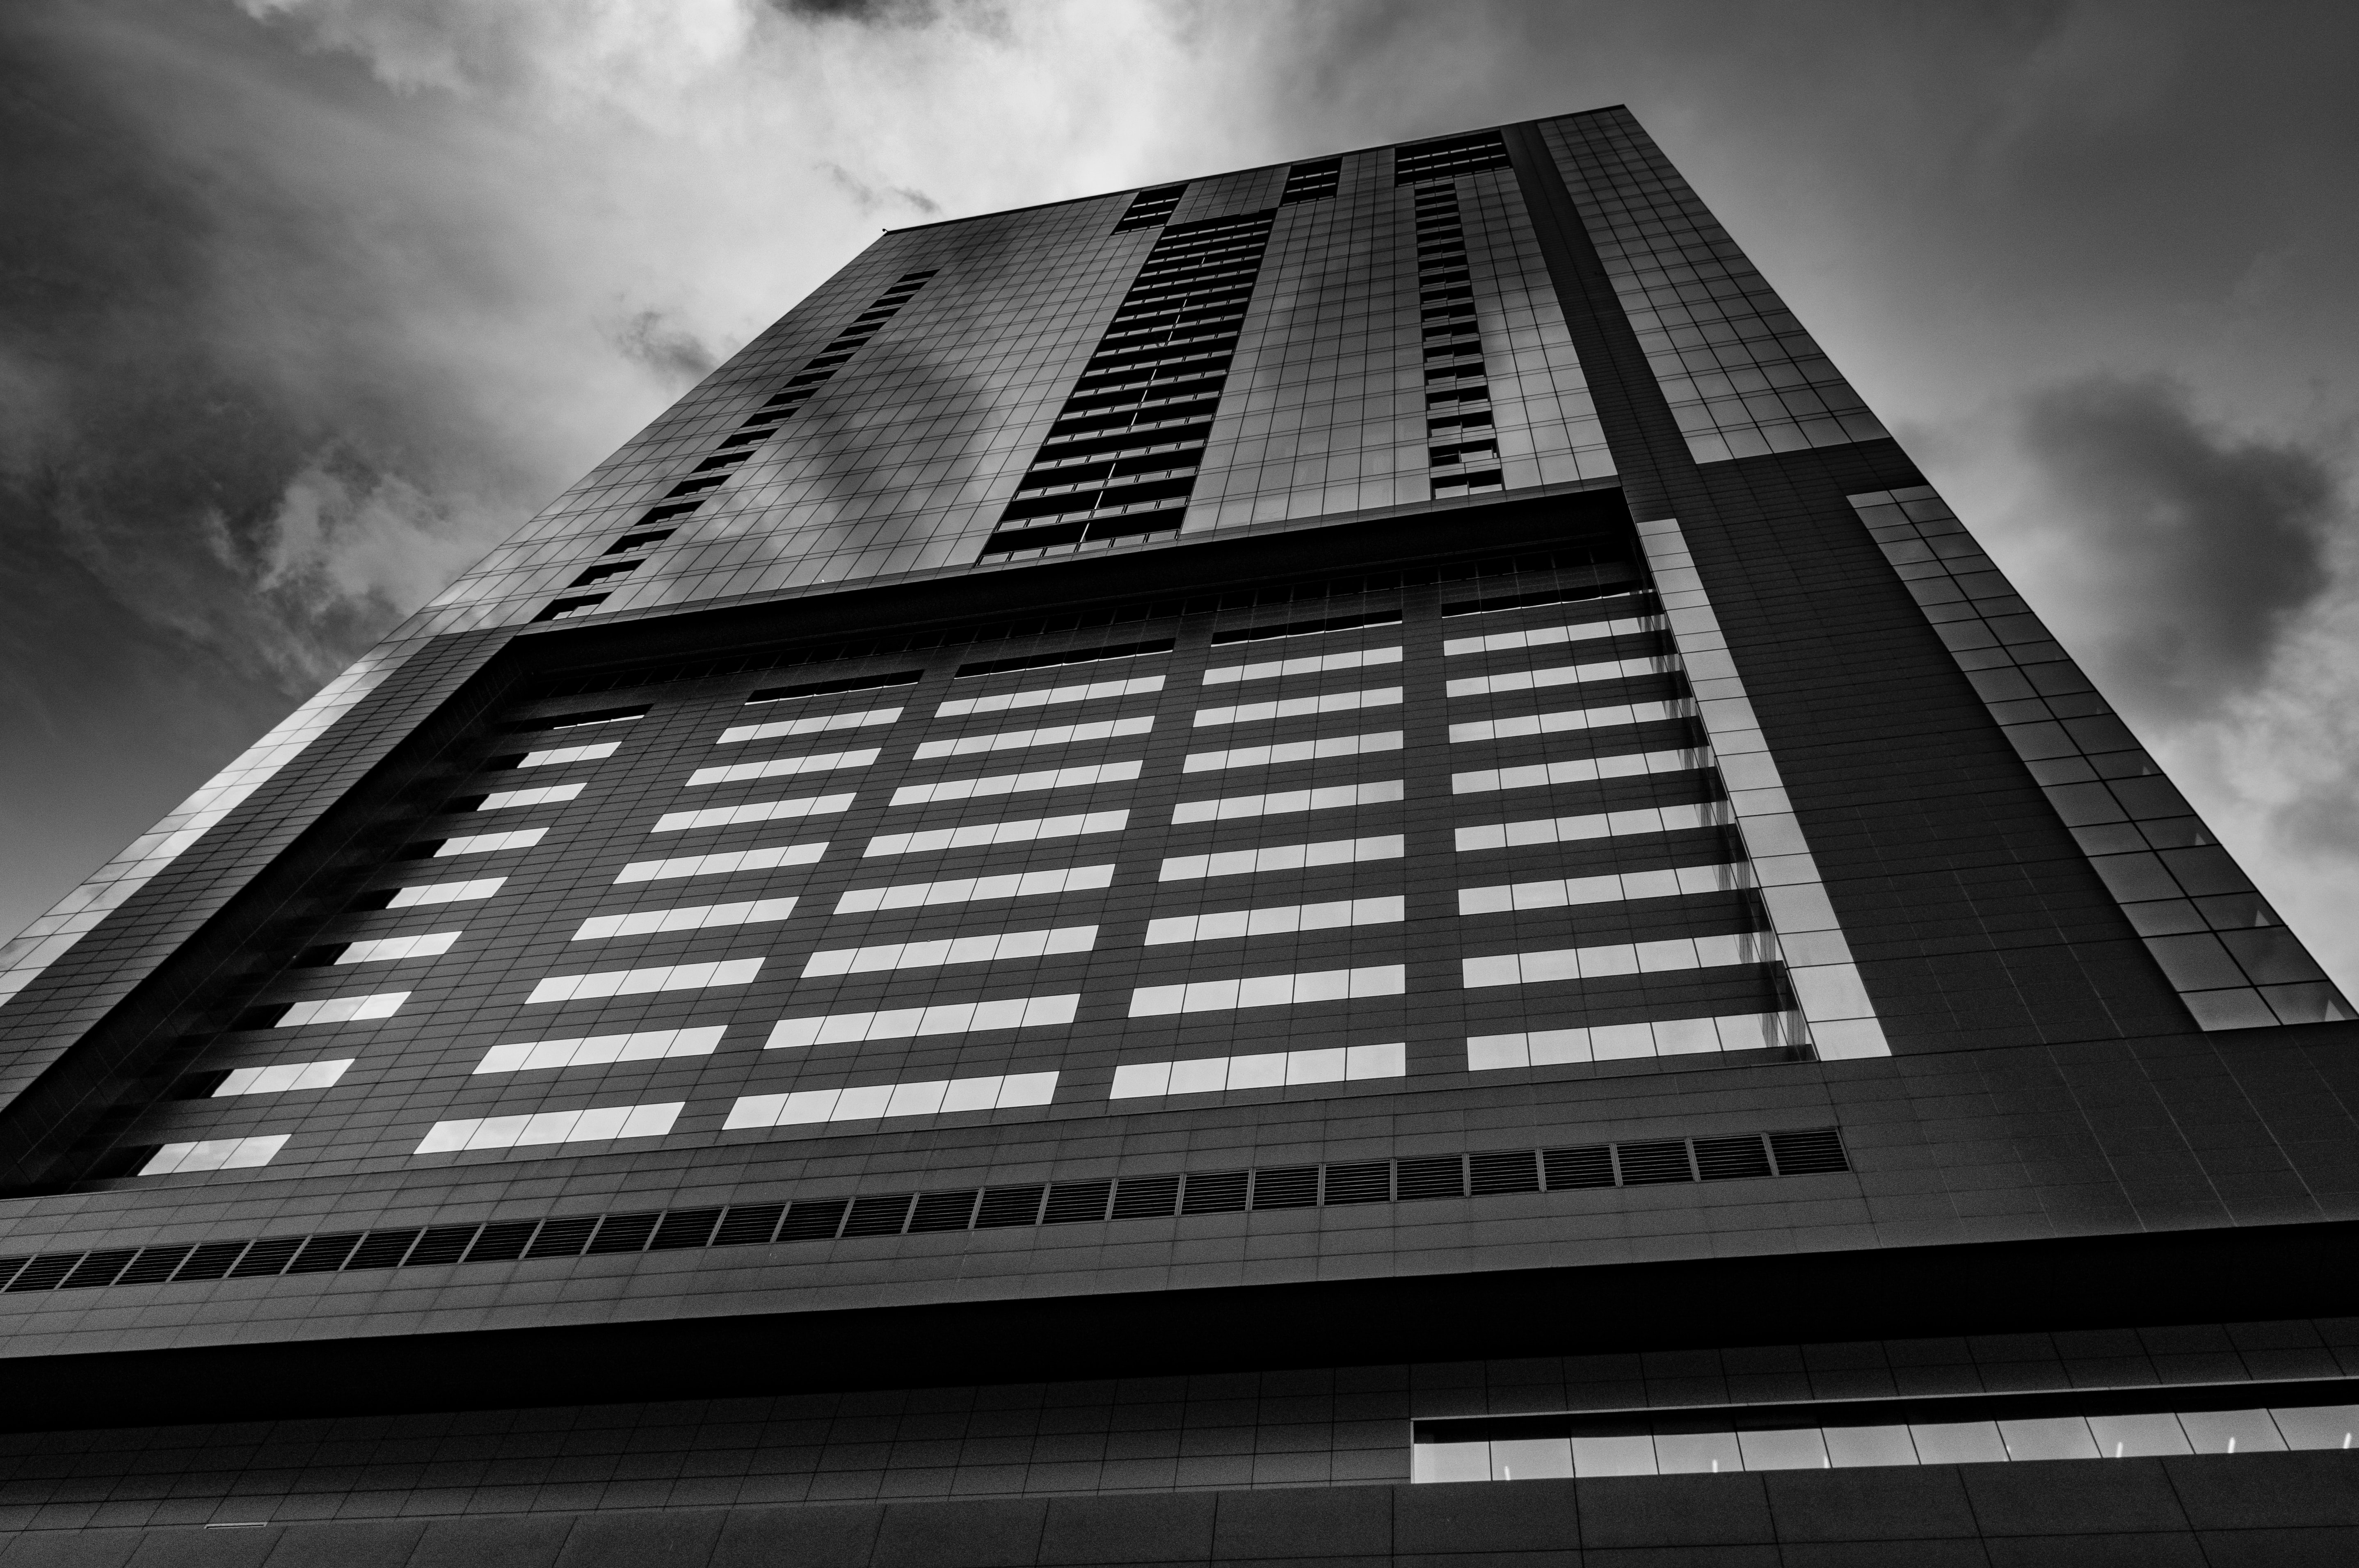 Black and white shot of tower building architecture from below with cloudy sky in Austin